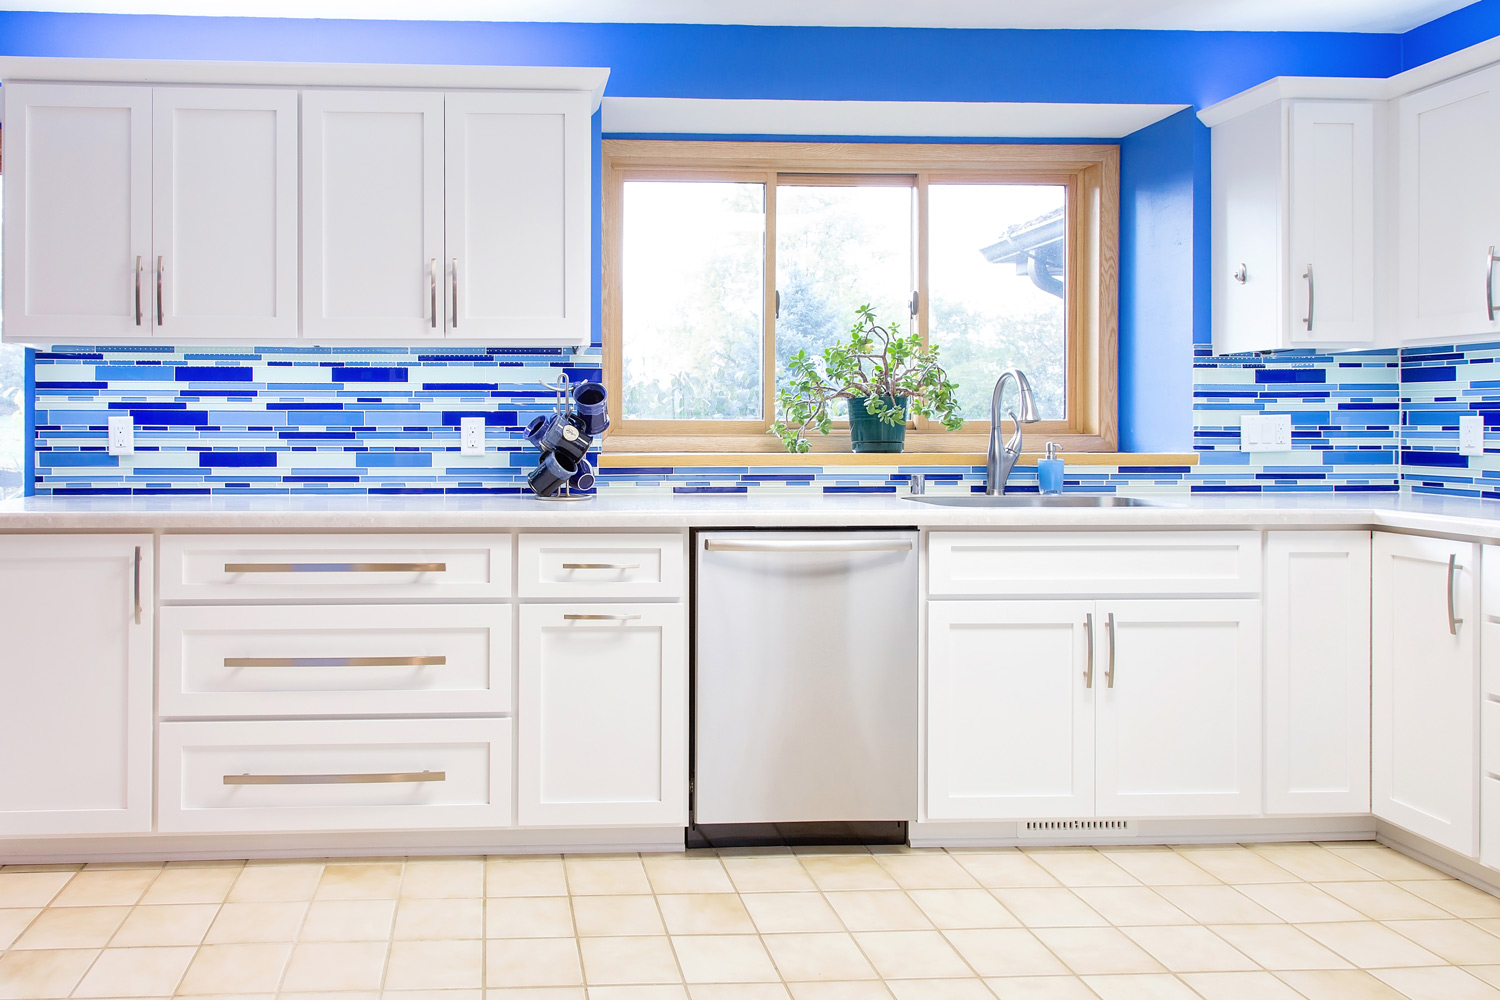 Shaker Style White Cabinetry With Bar Style Drawer Pulls